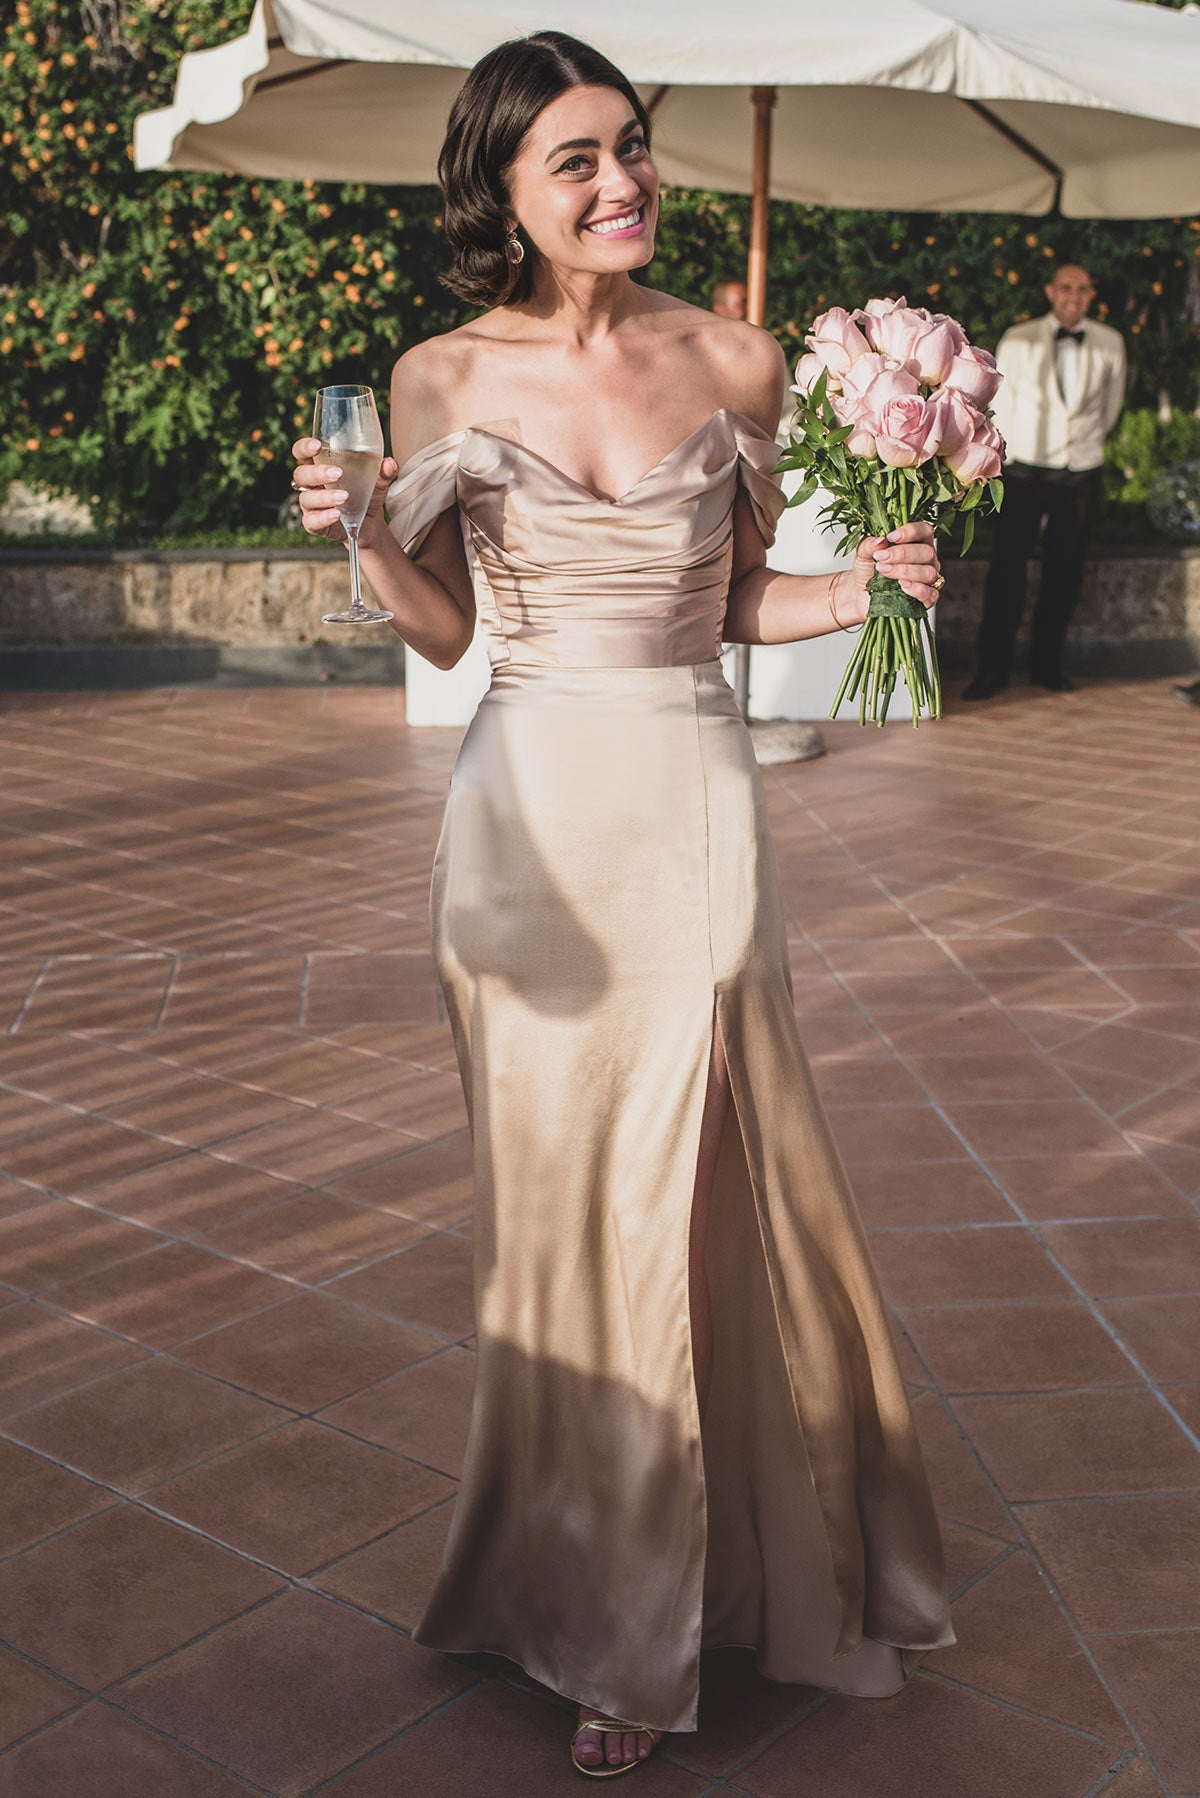 Silk wedding skirt and top set